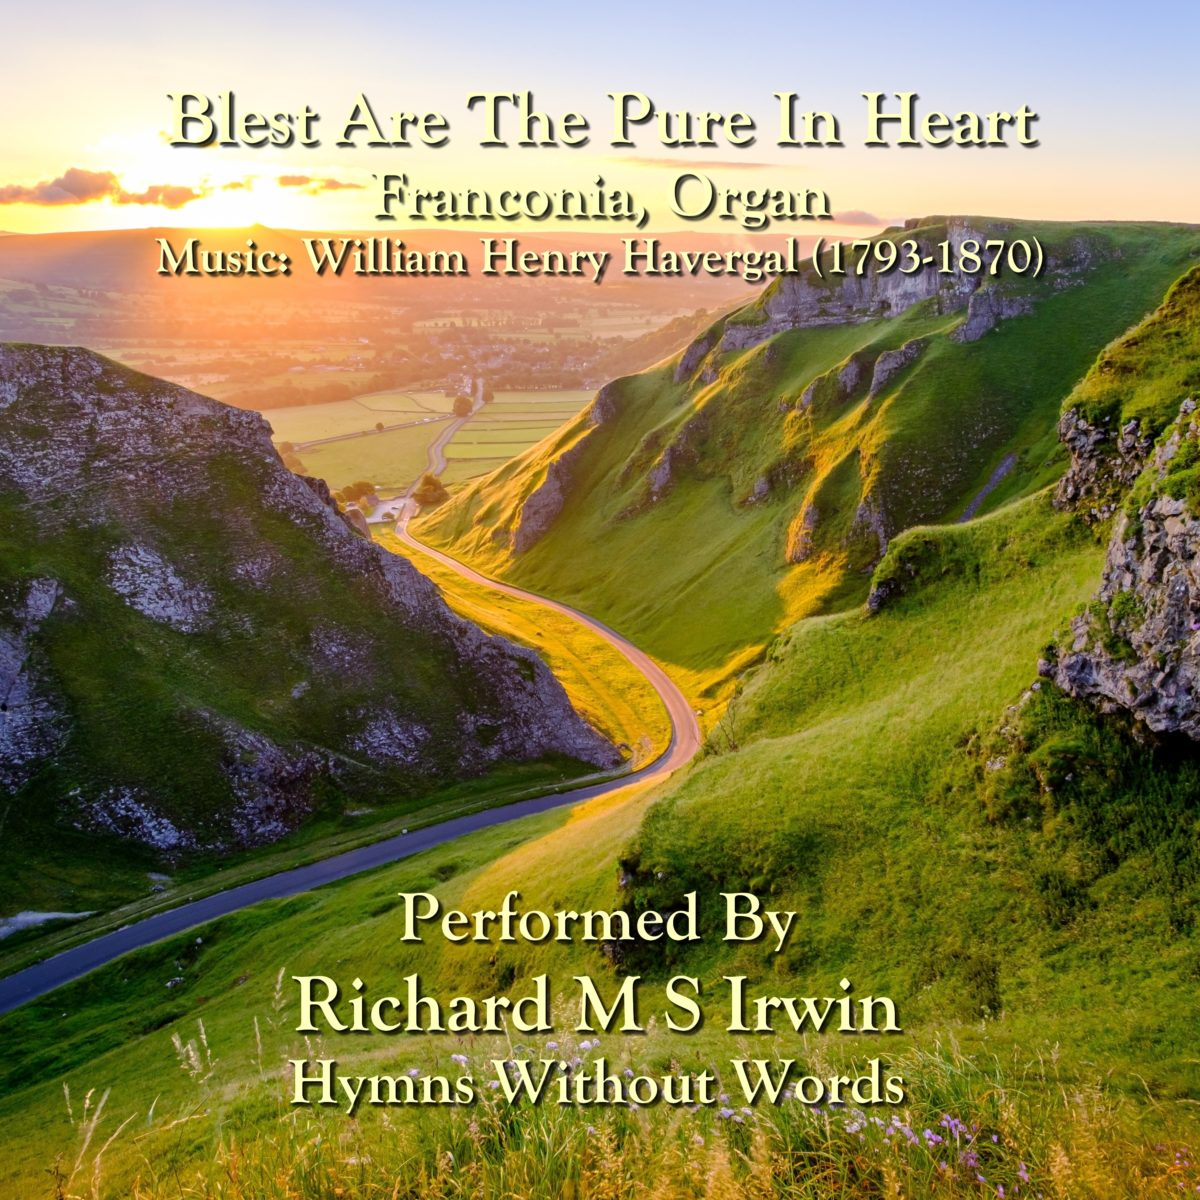 Blest Are The Pure In Heart (Franconia, Organ, 4 Verses)